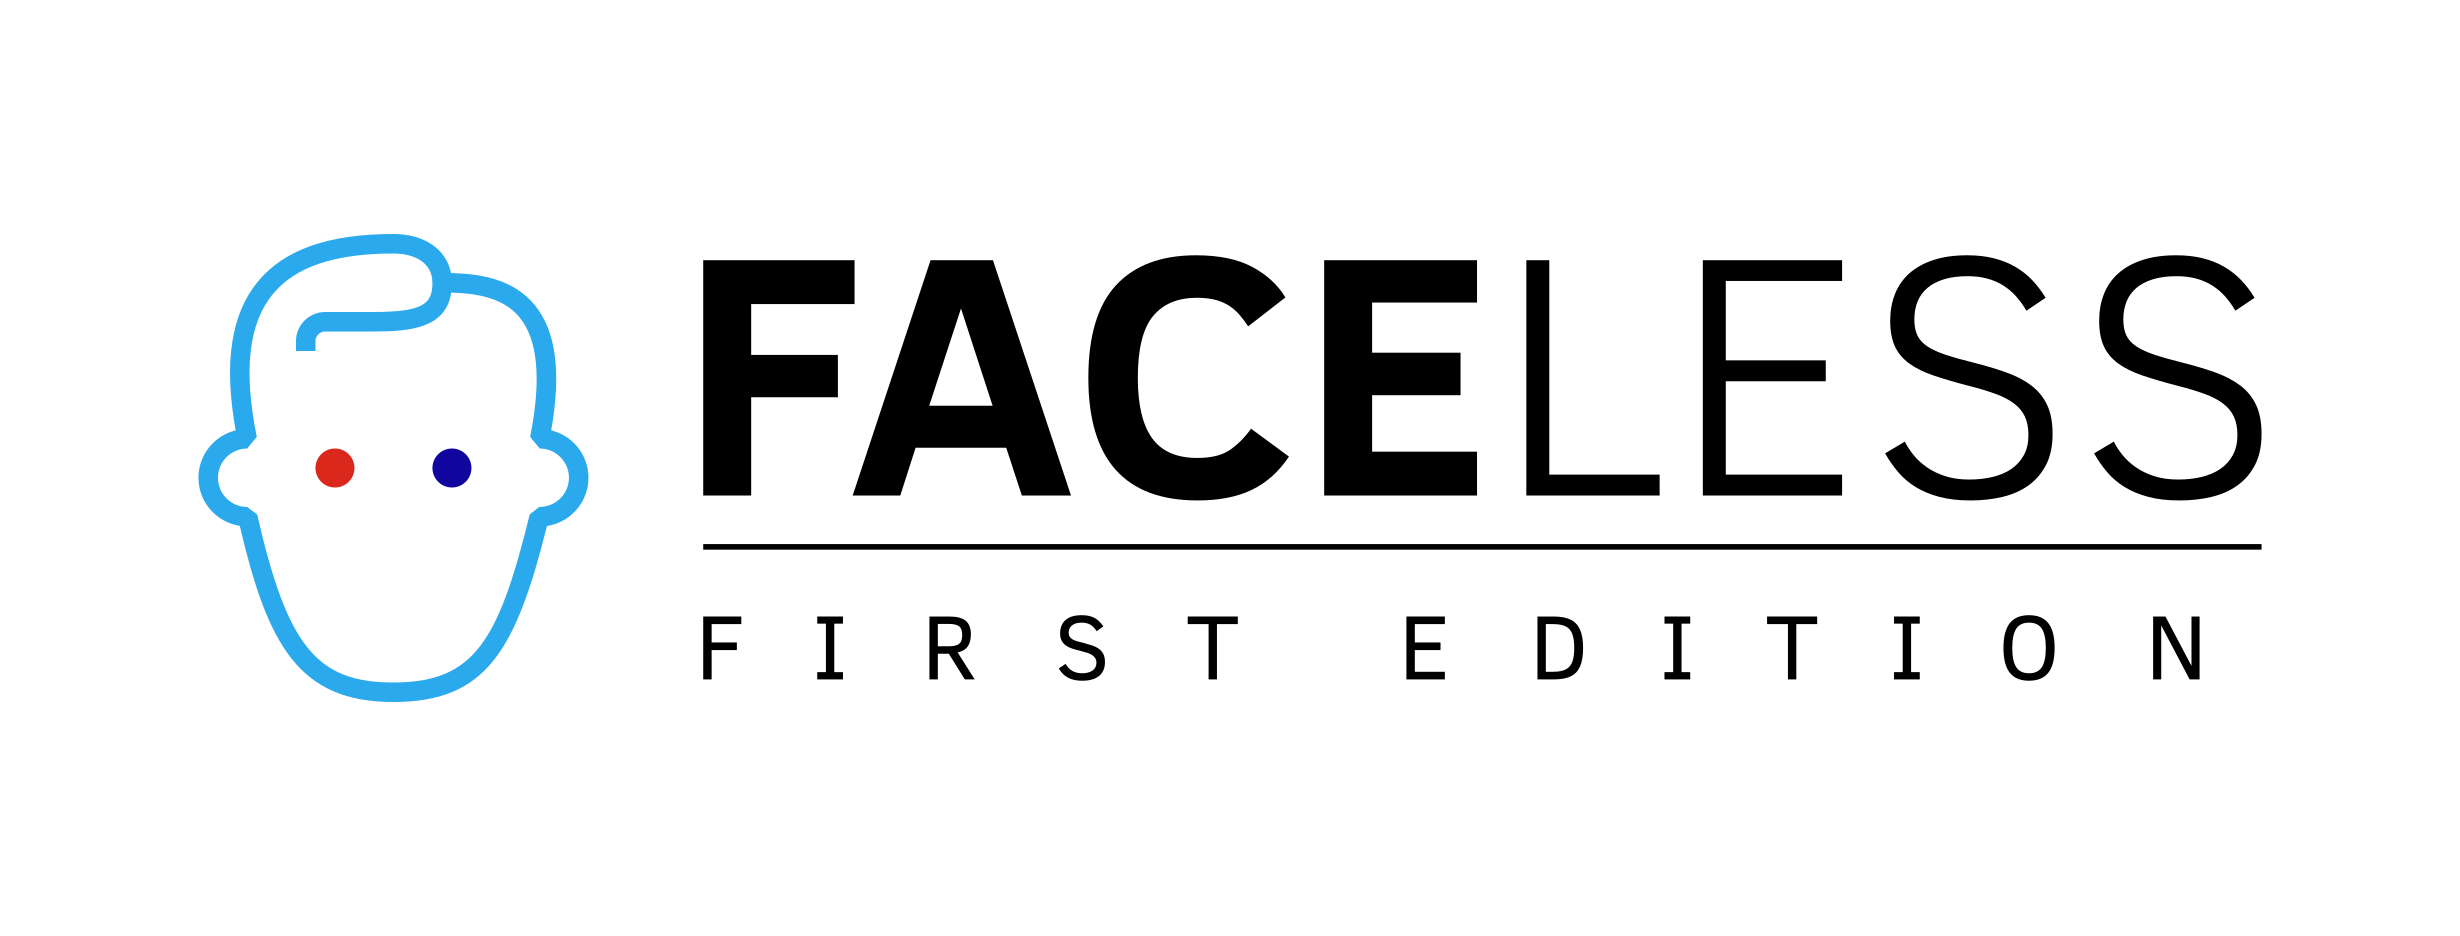 Faceless - First Edition